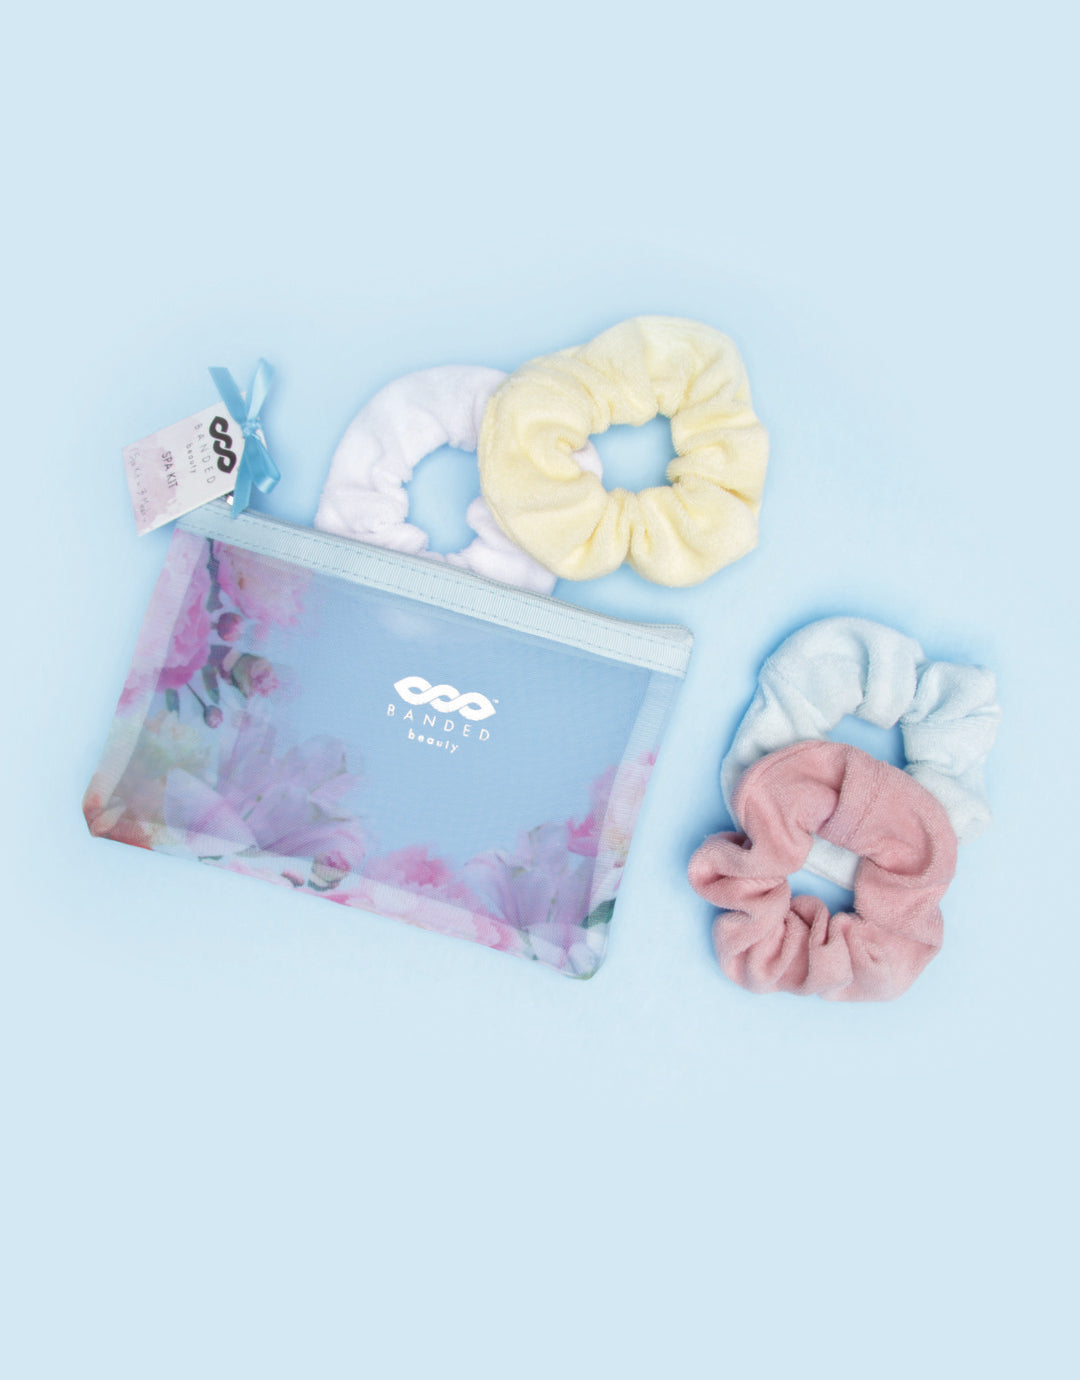 BANDED Women's Premium Hair Accessories + Gift Sets - Floral Splendor - Scrunchie Spa Set